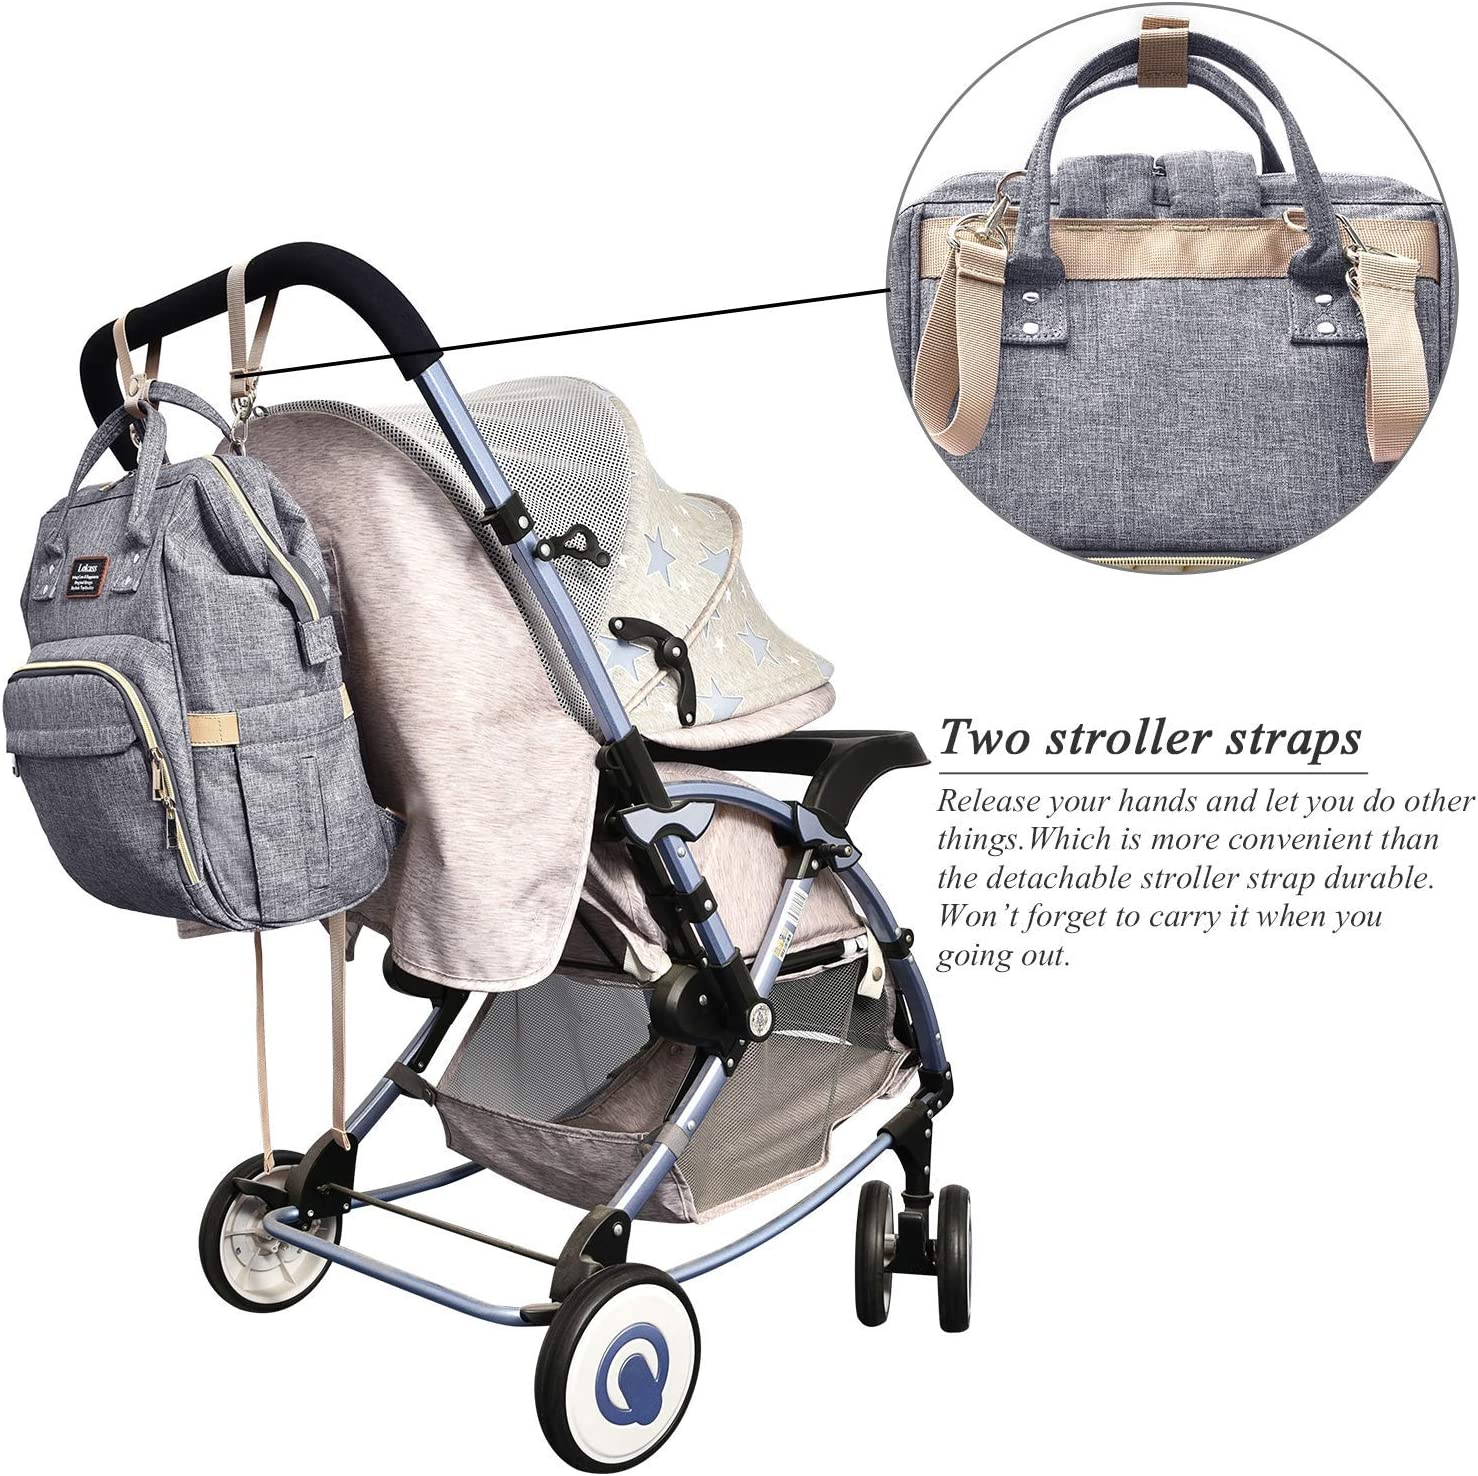 Grey BRINCH Nappy Bag Backpack Baby Bag Water Resistant Multi-Functional Diaper Bag Travel Nursing Backpack w//Changing Pad,Insulated Pouch /& Stroller Straps for Mom//Baby Care//Women